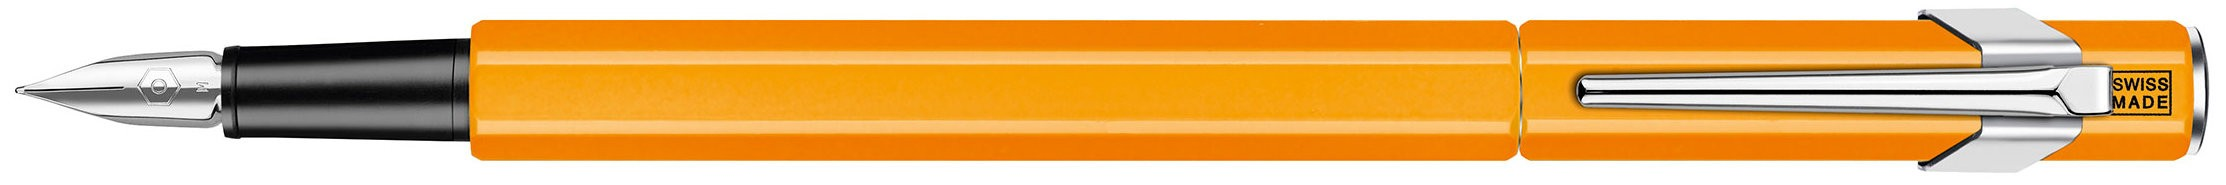 Перьевая ручка Caran d'Ache Office 849 Fluo Orange